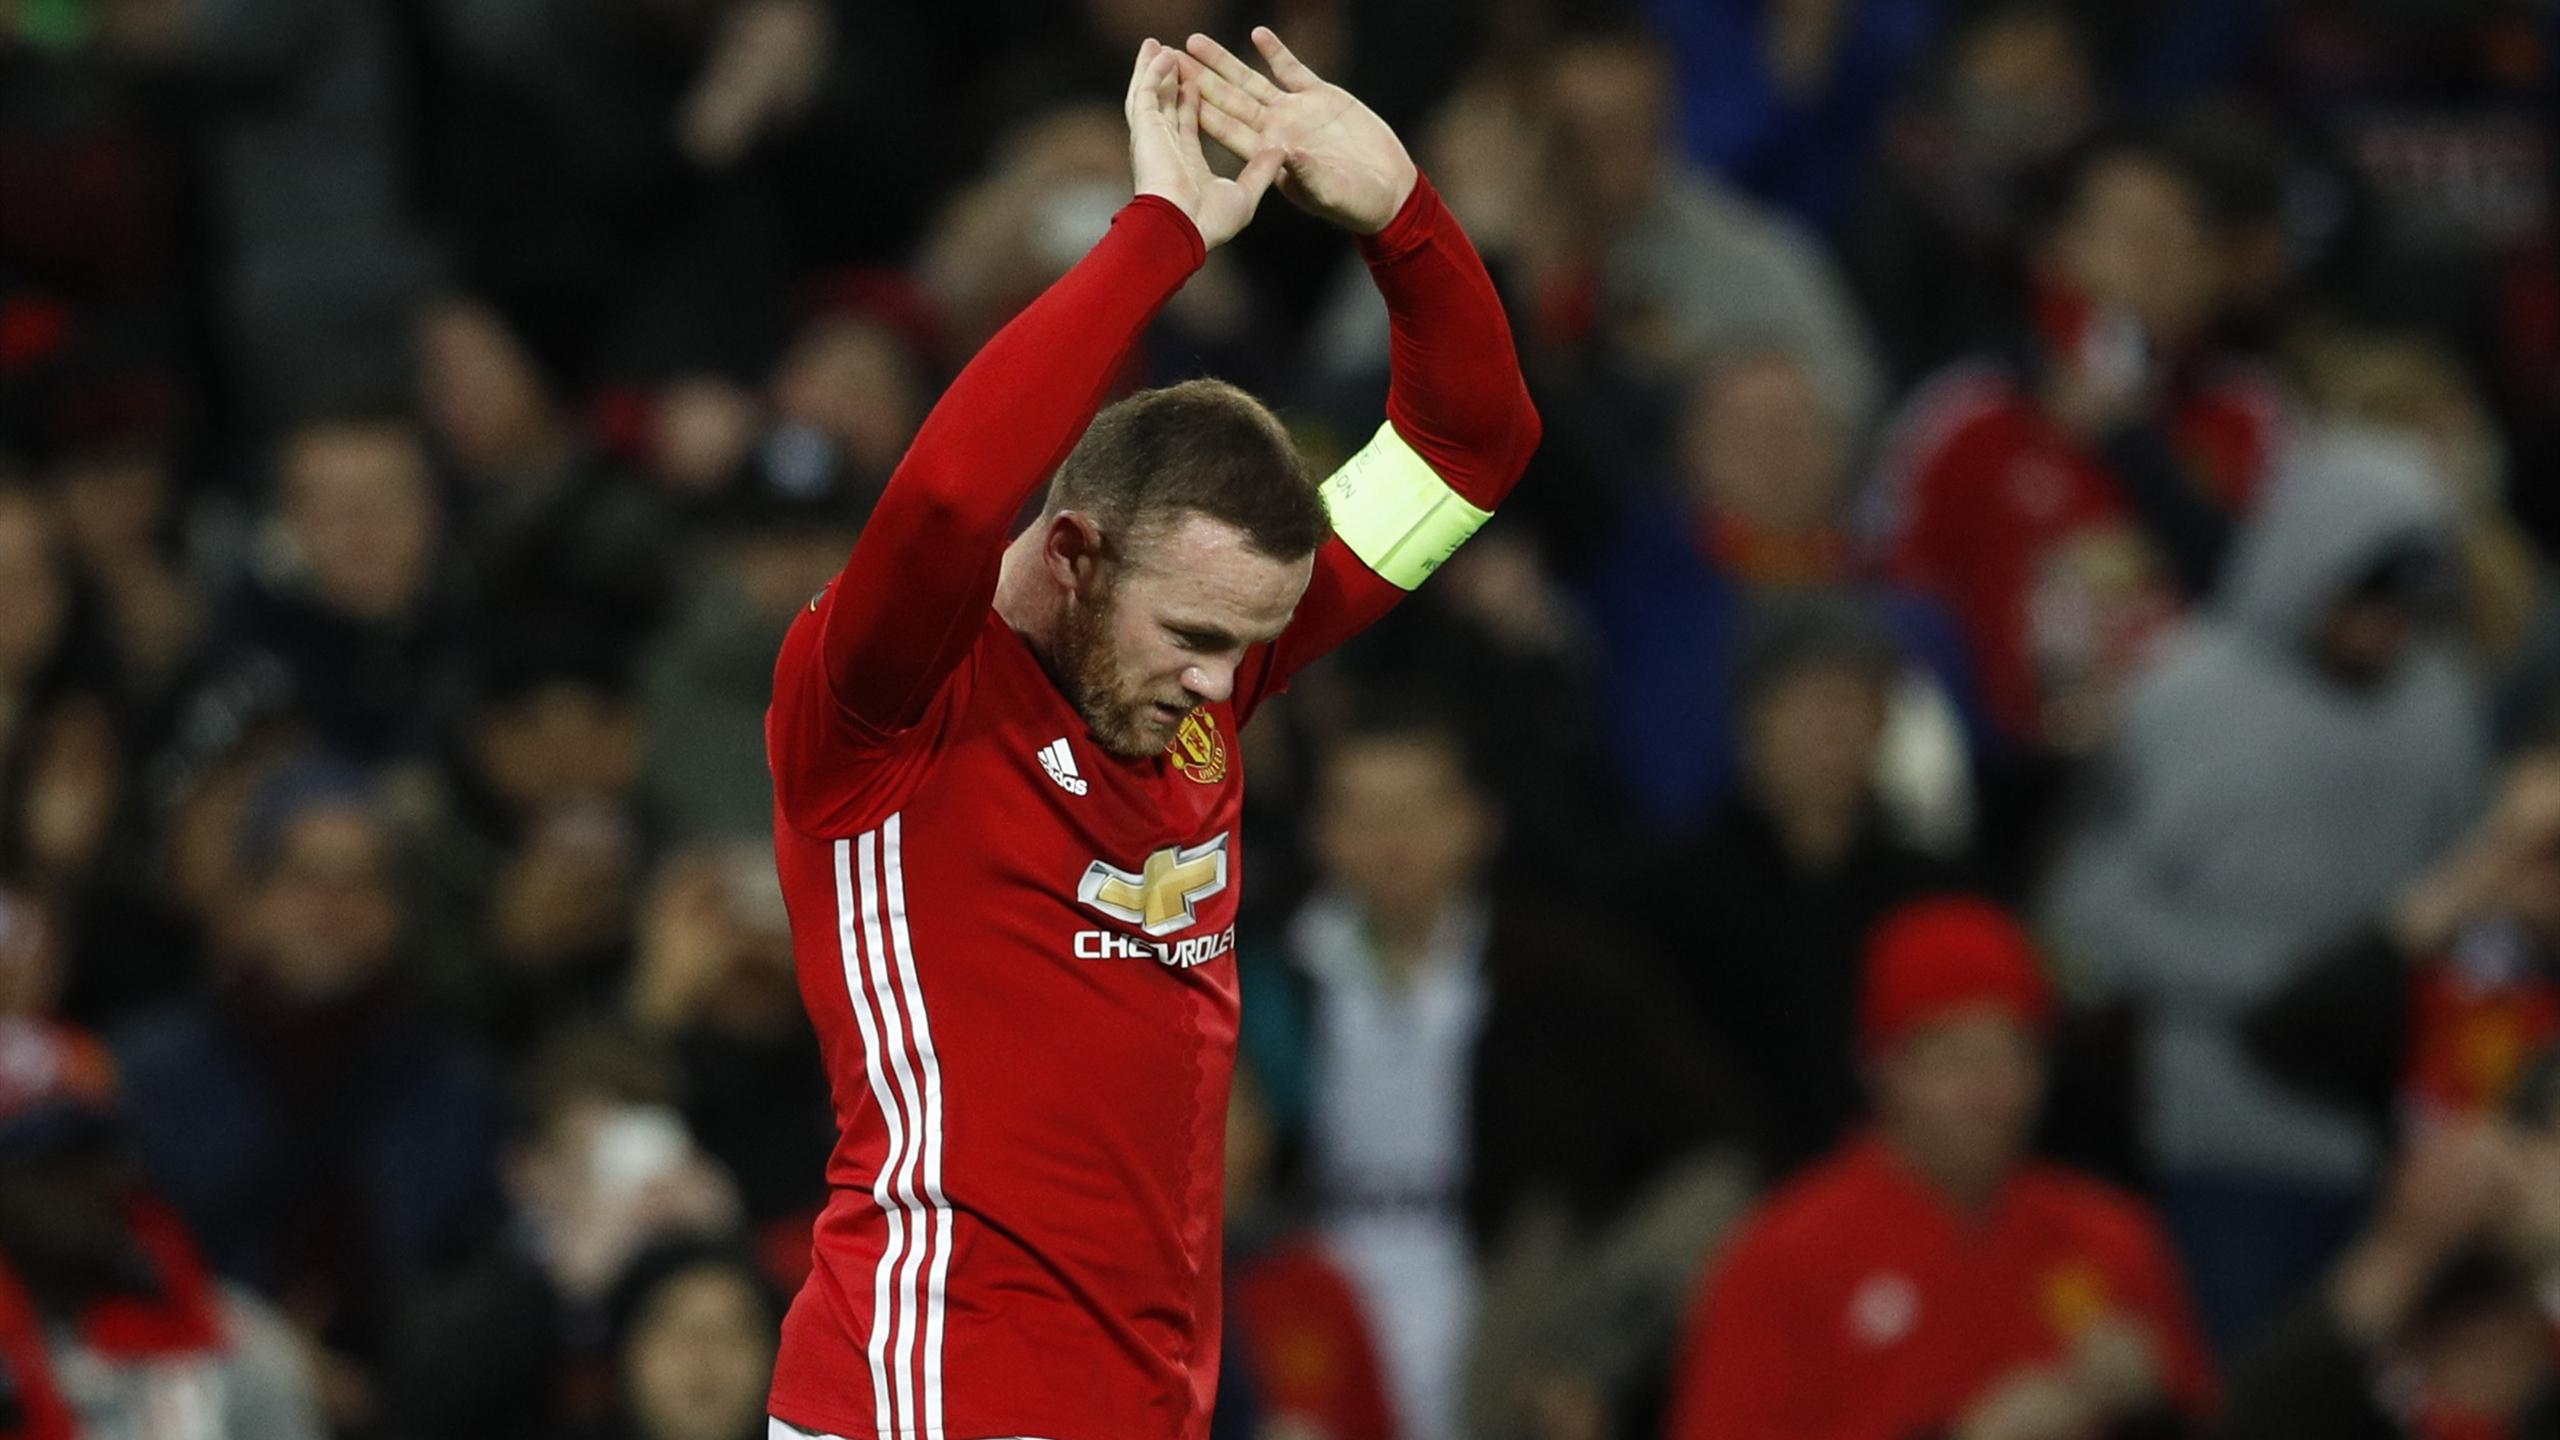 Manchester United's Wayne Rooney celebrates scoring their first goal